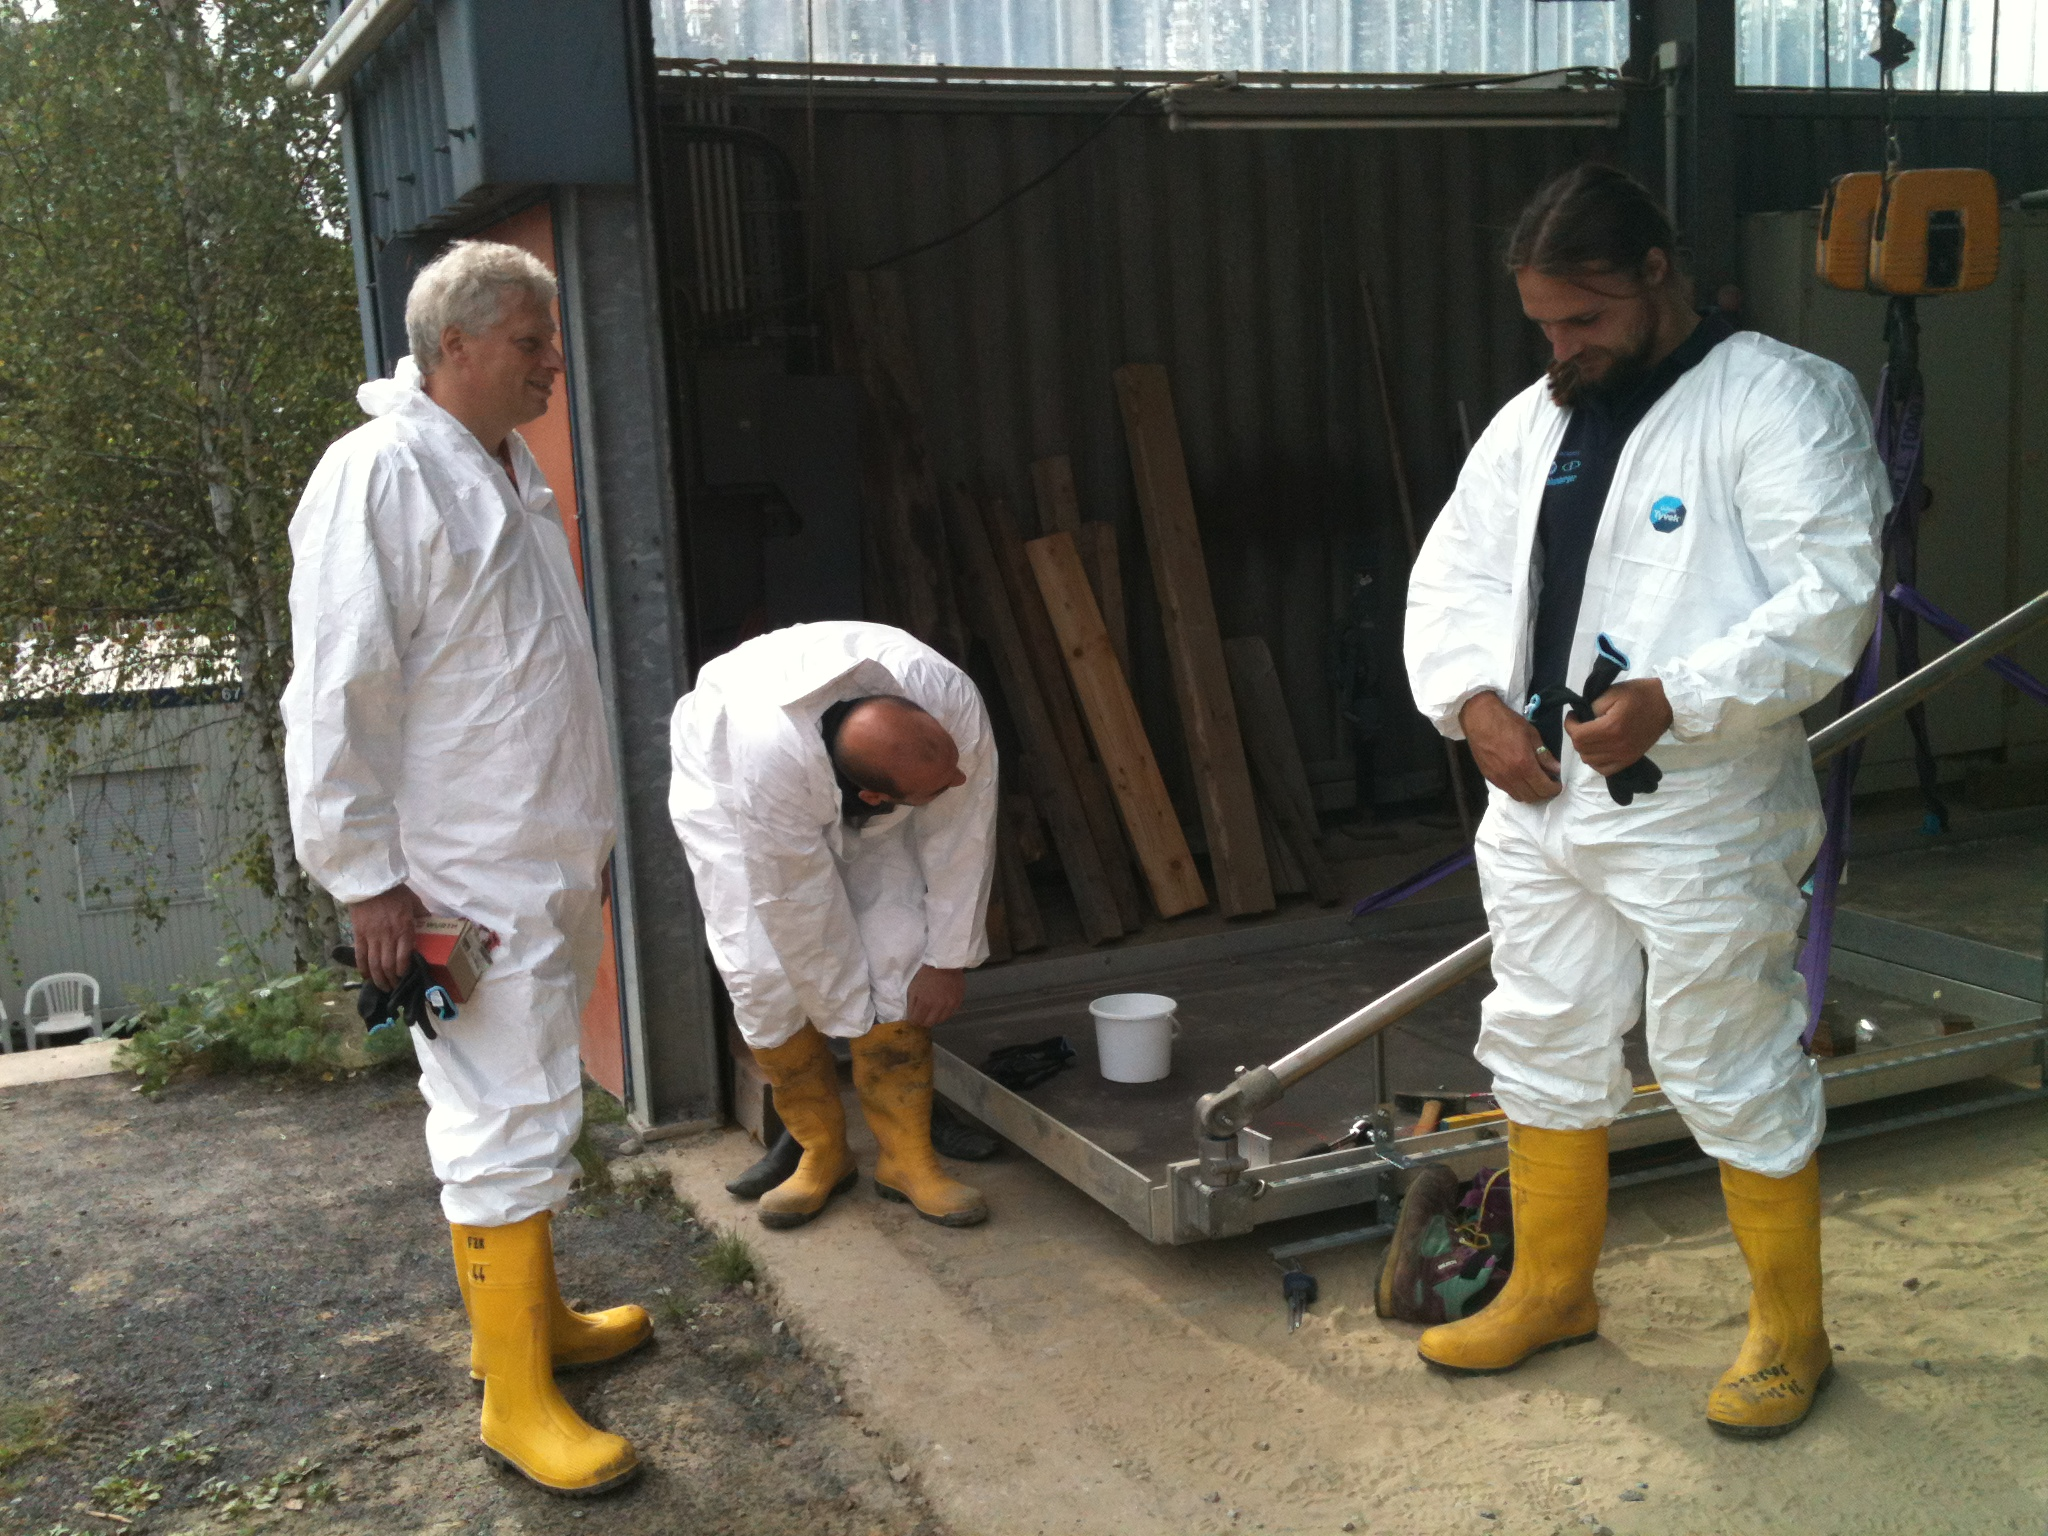 Tjeerd, Kostas, and Ben get kitted out for some serious concreting...